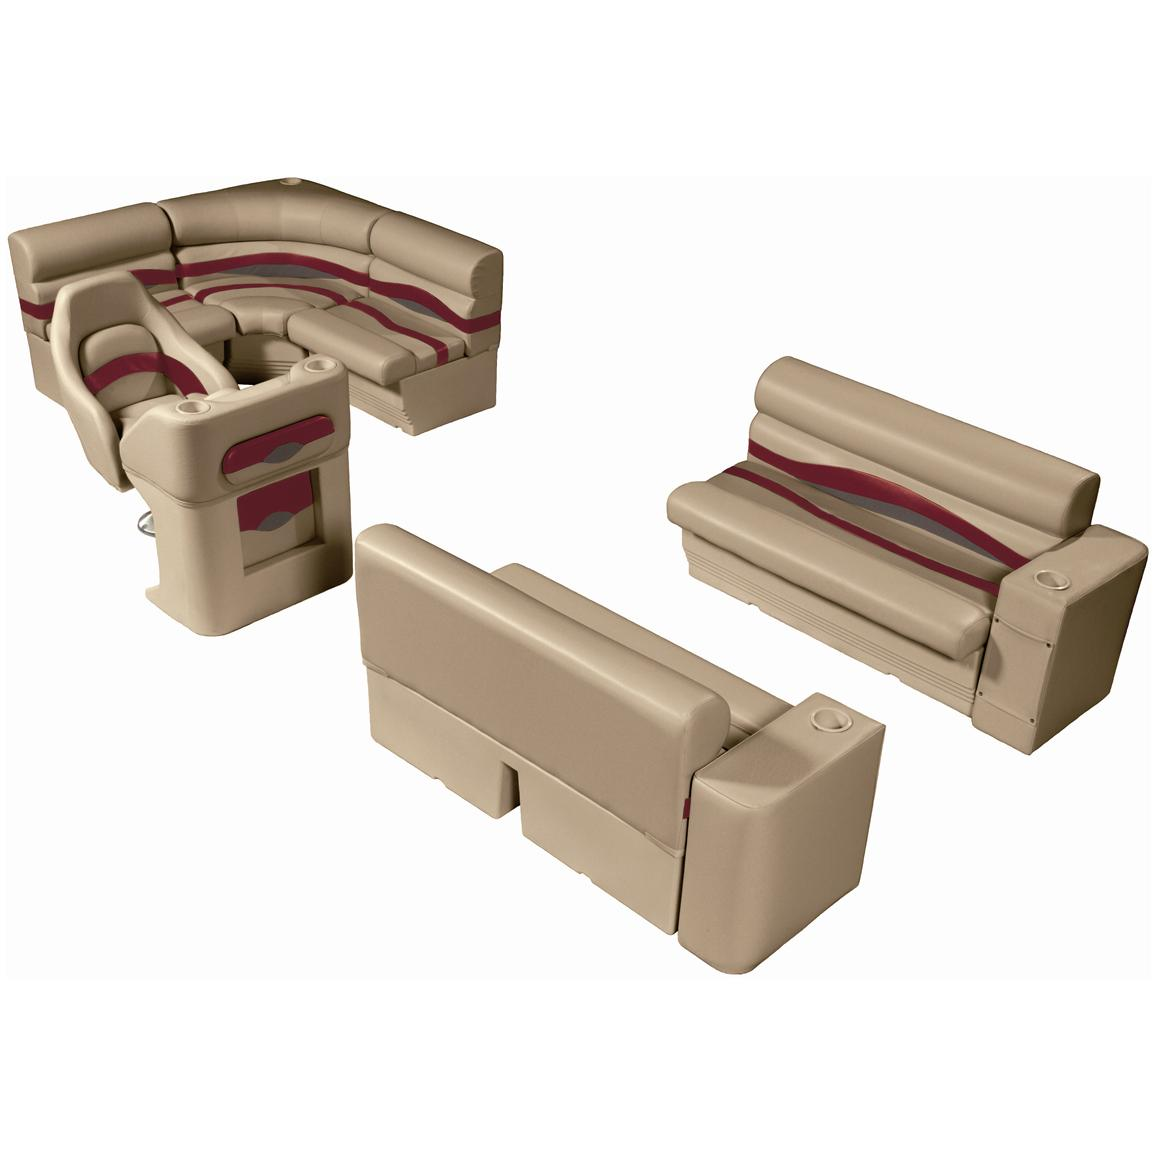 Wise® Premier Seat Group for 8' Rear Entry Pontoons, Color E - Mocha Java Punch / Dark Red / Rock Salt